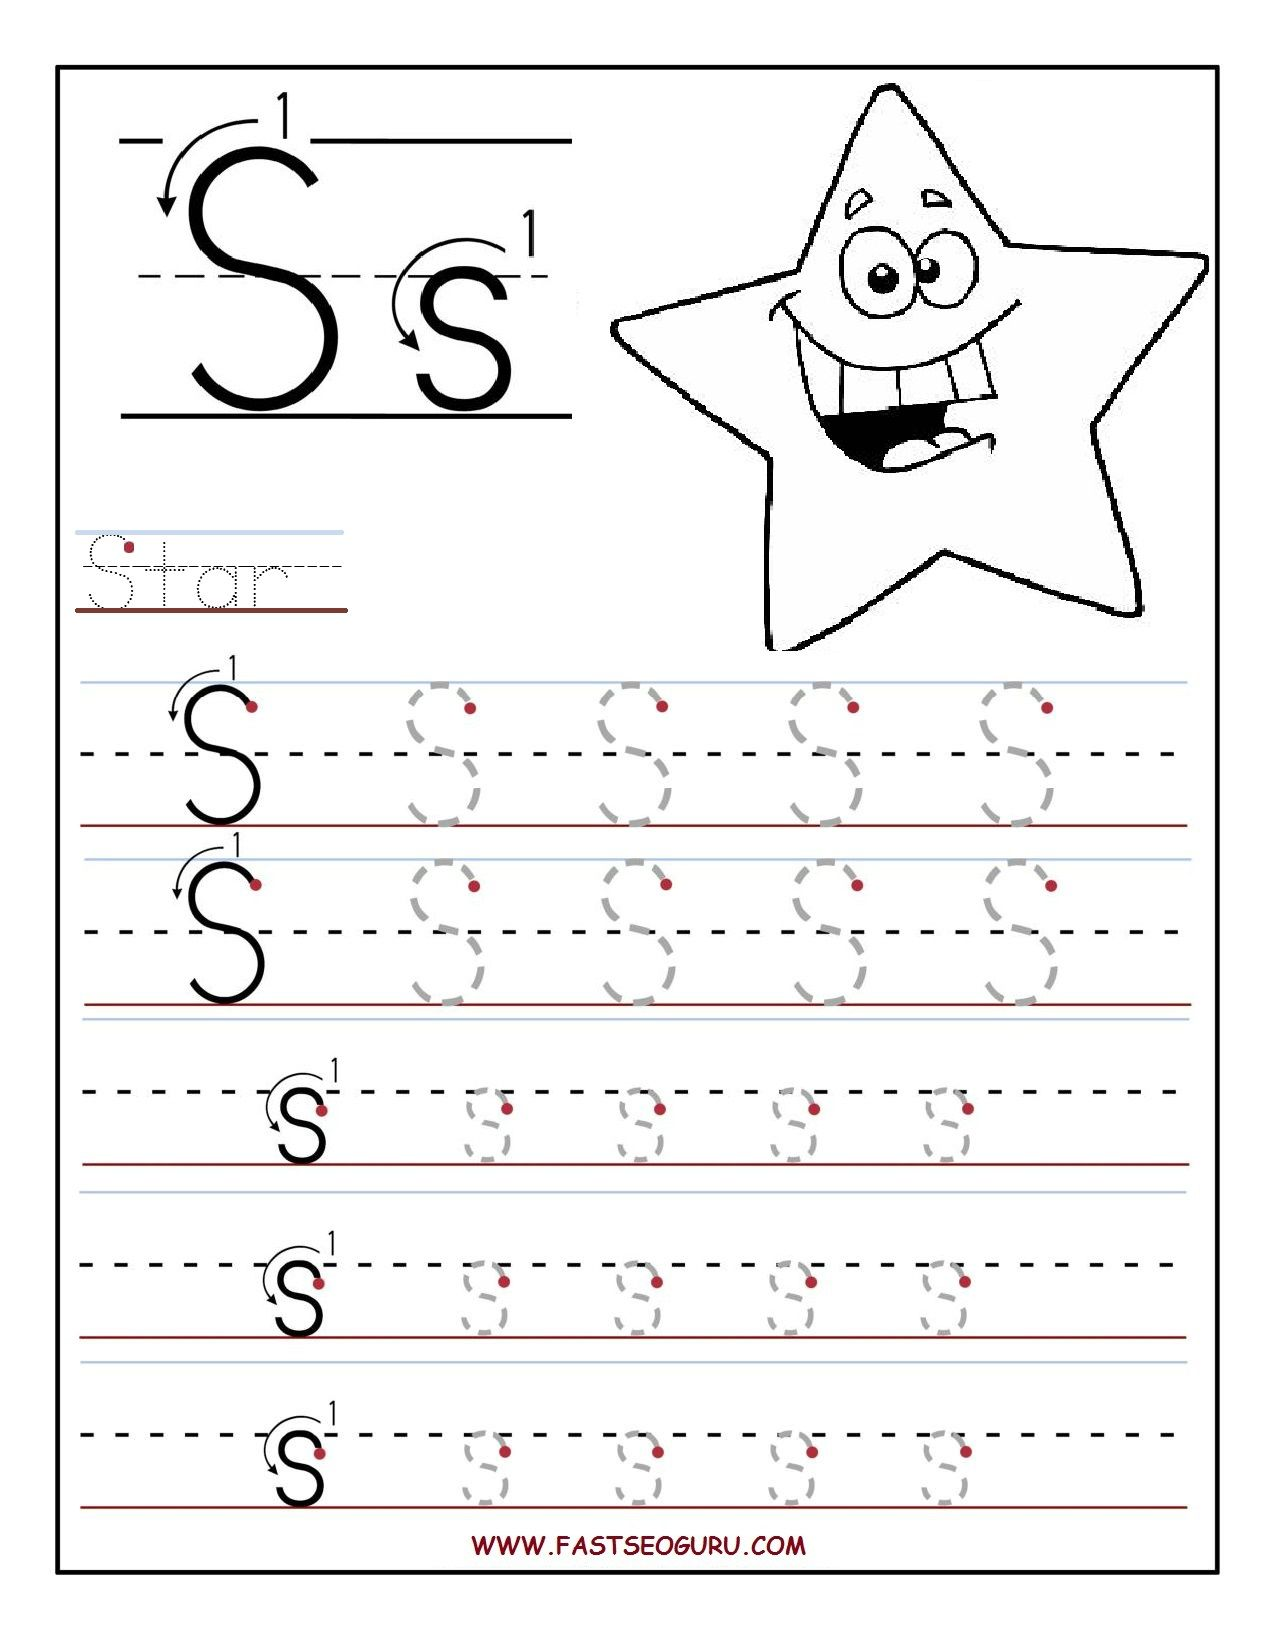 letter s worksheets for preschool how to format cover letter. Black Bedroom Furniture Sets. Home Design Ideas